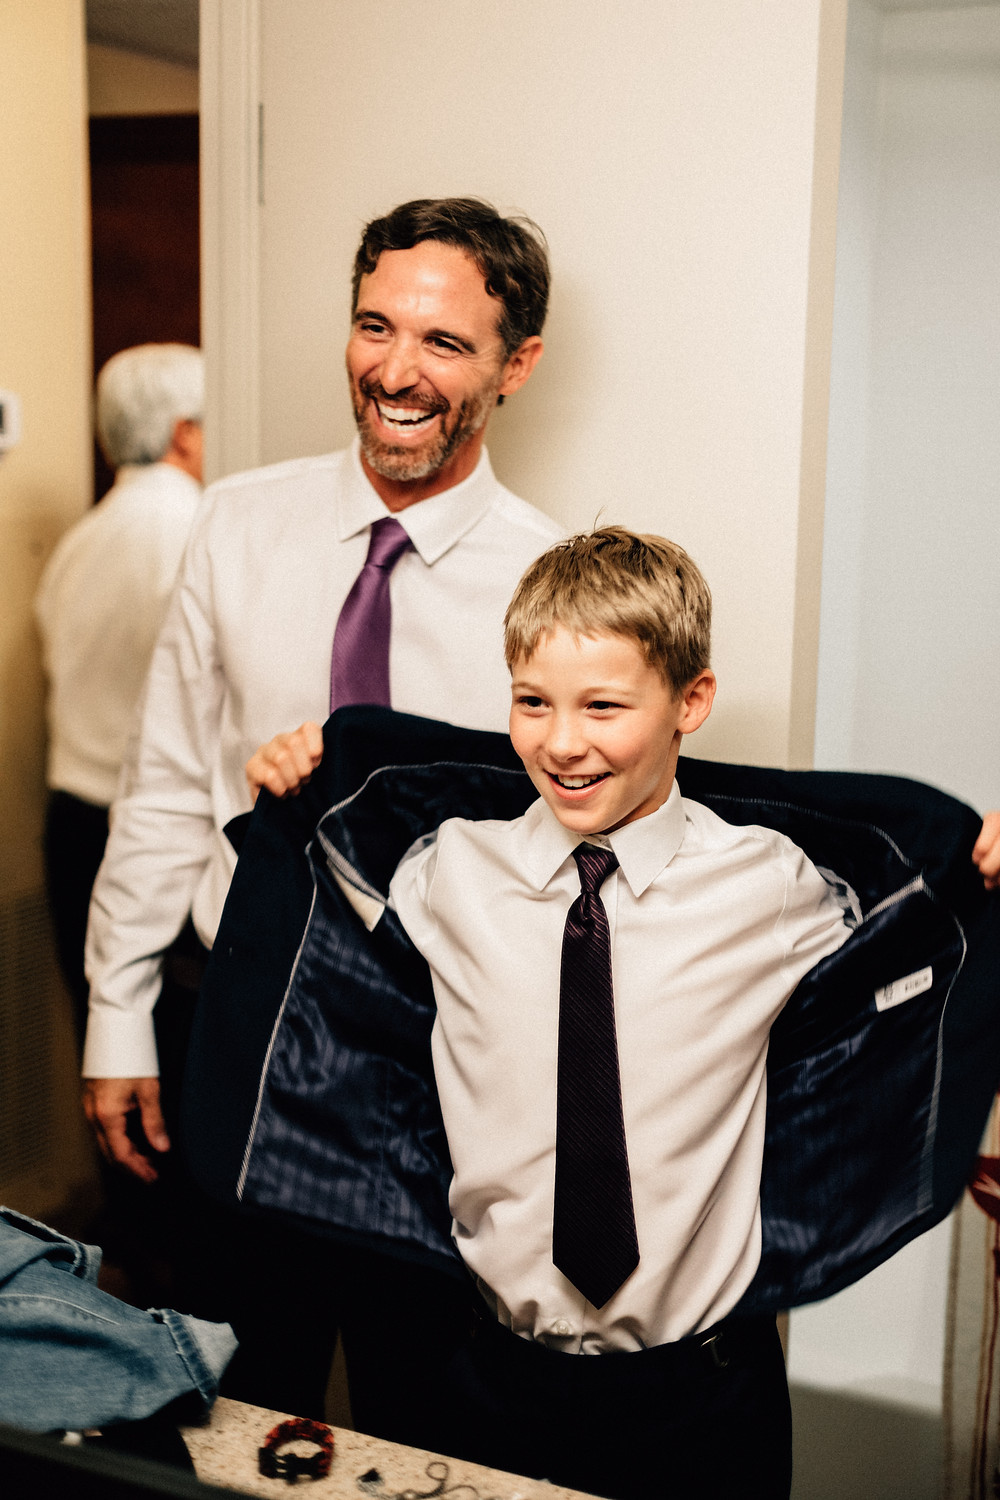 Dad and son on wedding day